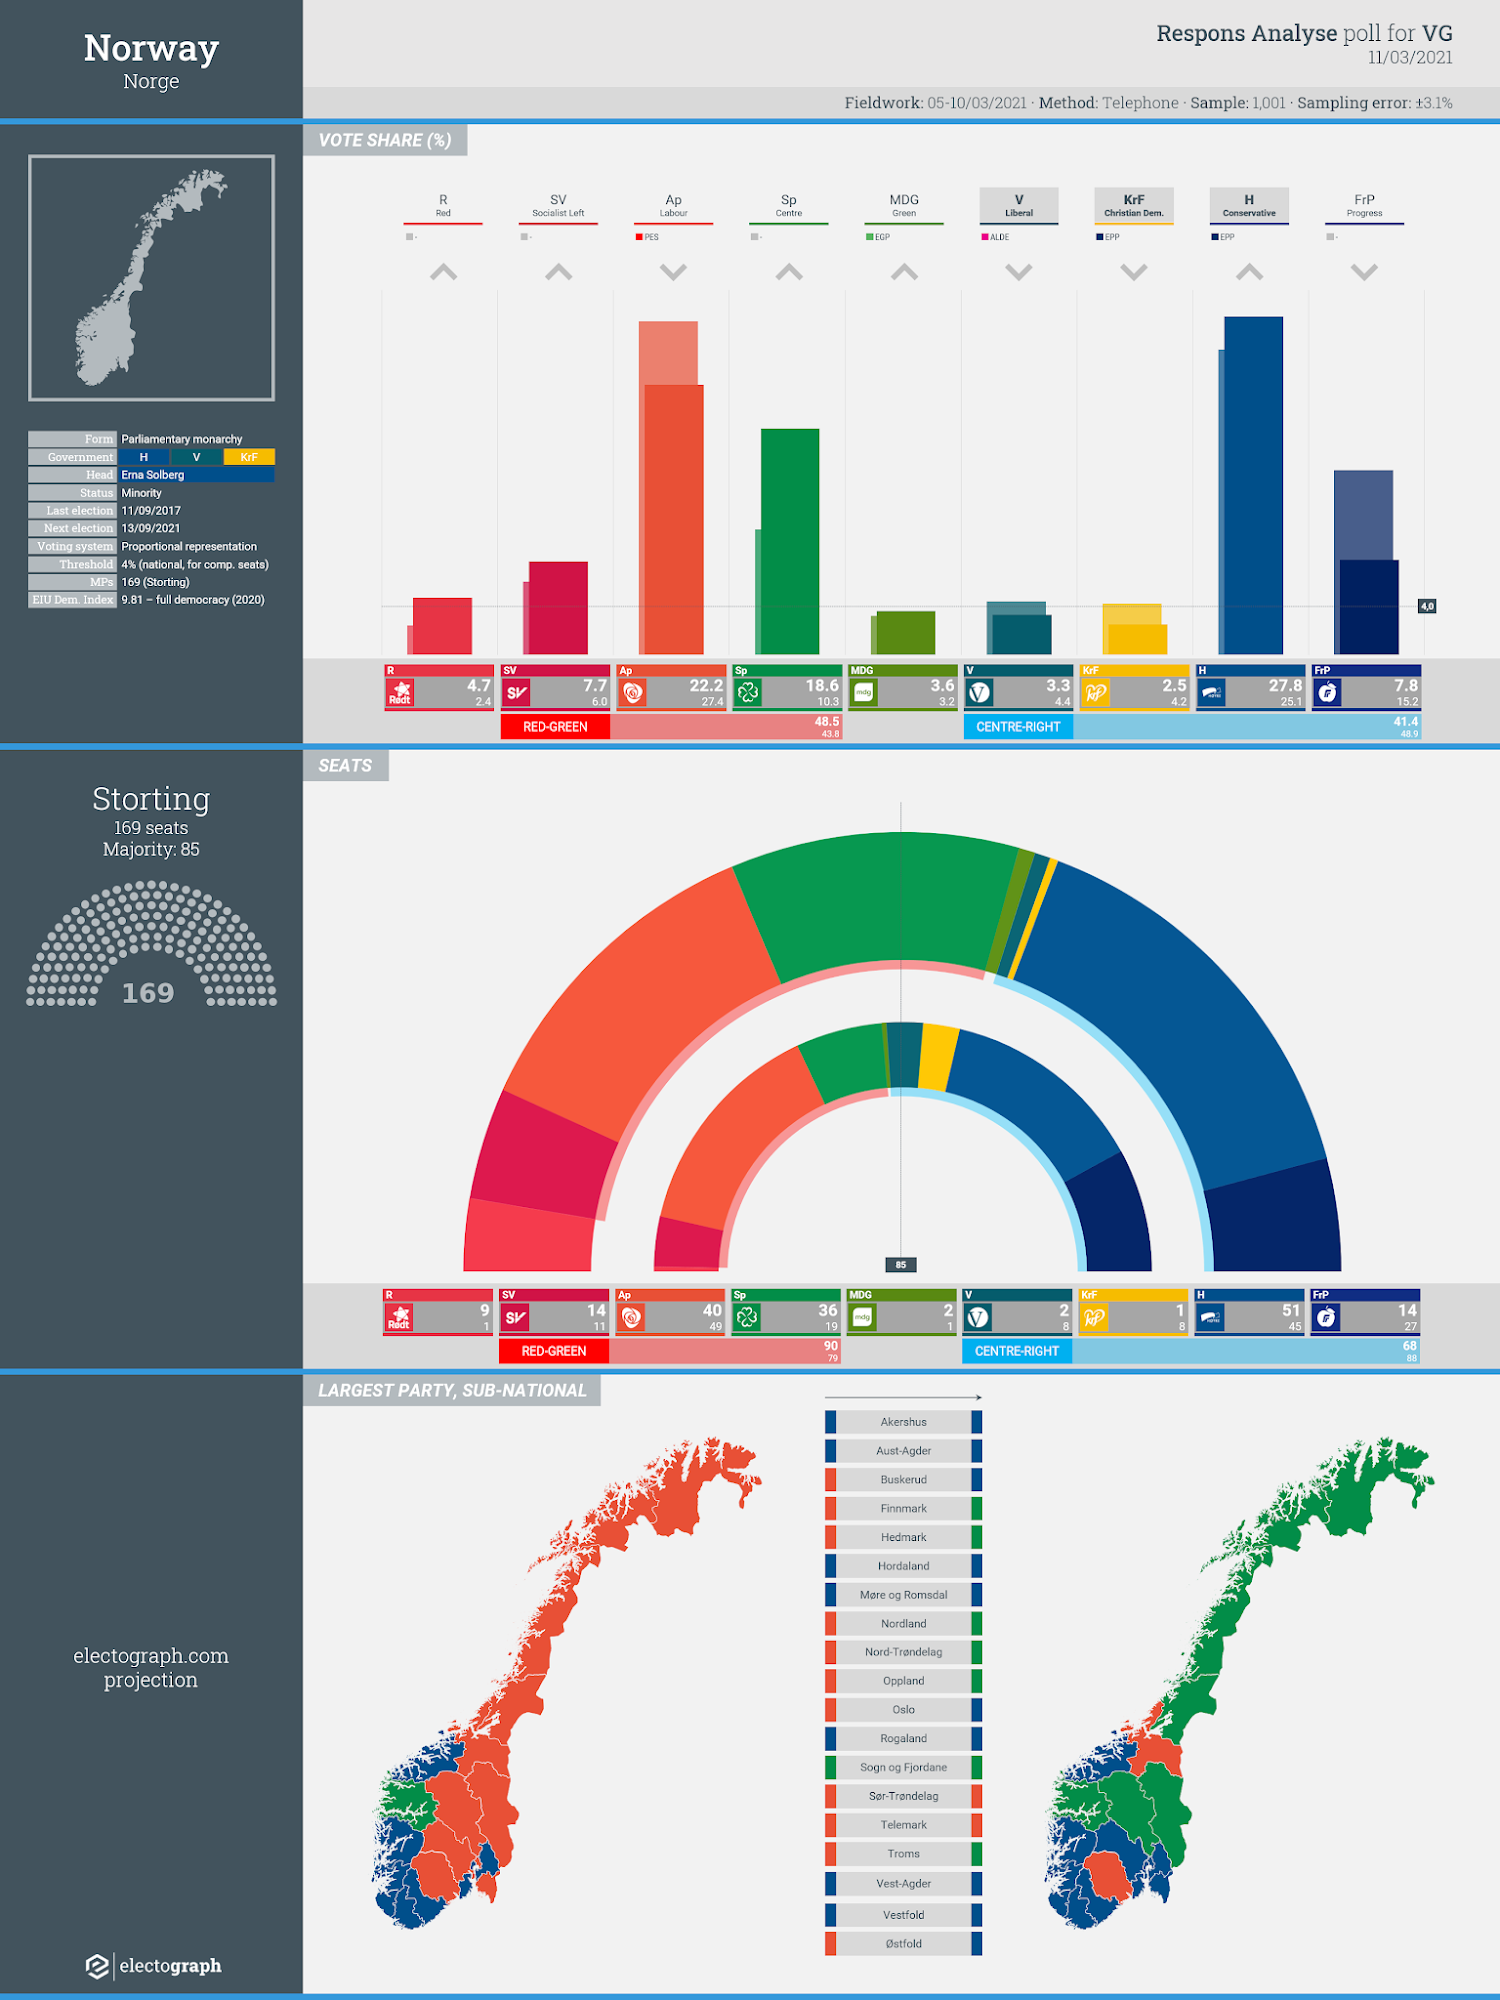 NORWAY: Respons Analyse poll chart for VG, 11 March 2021